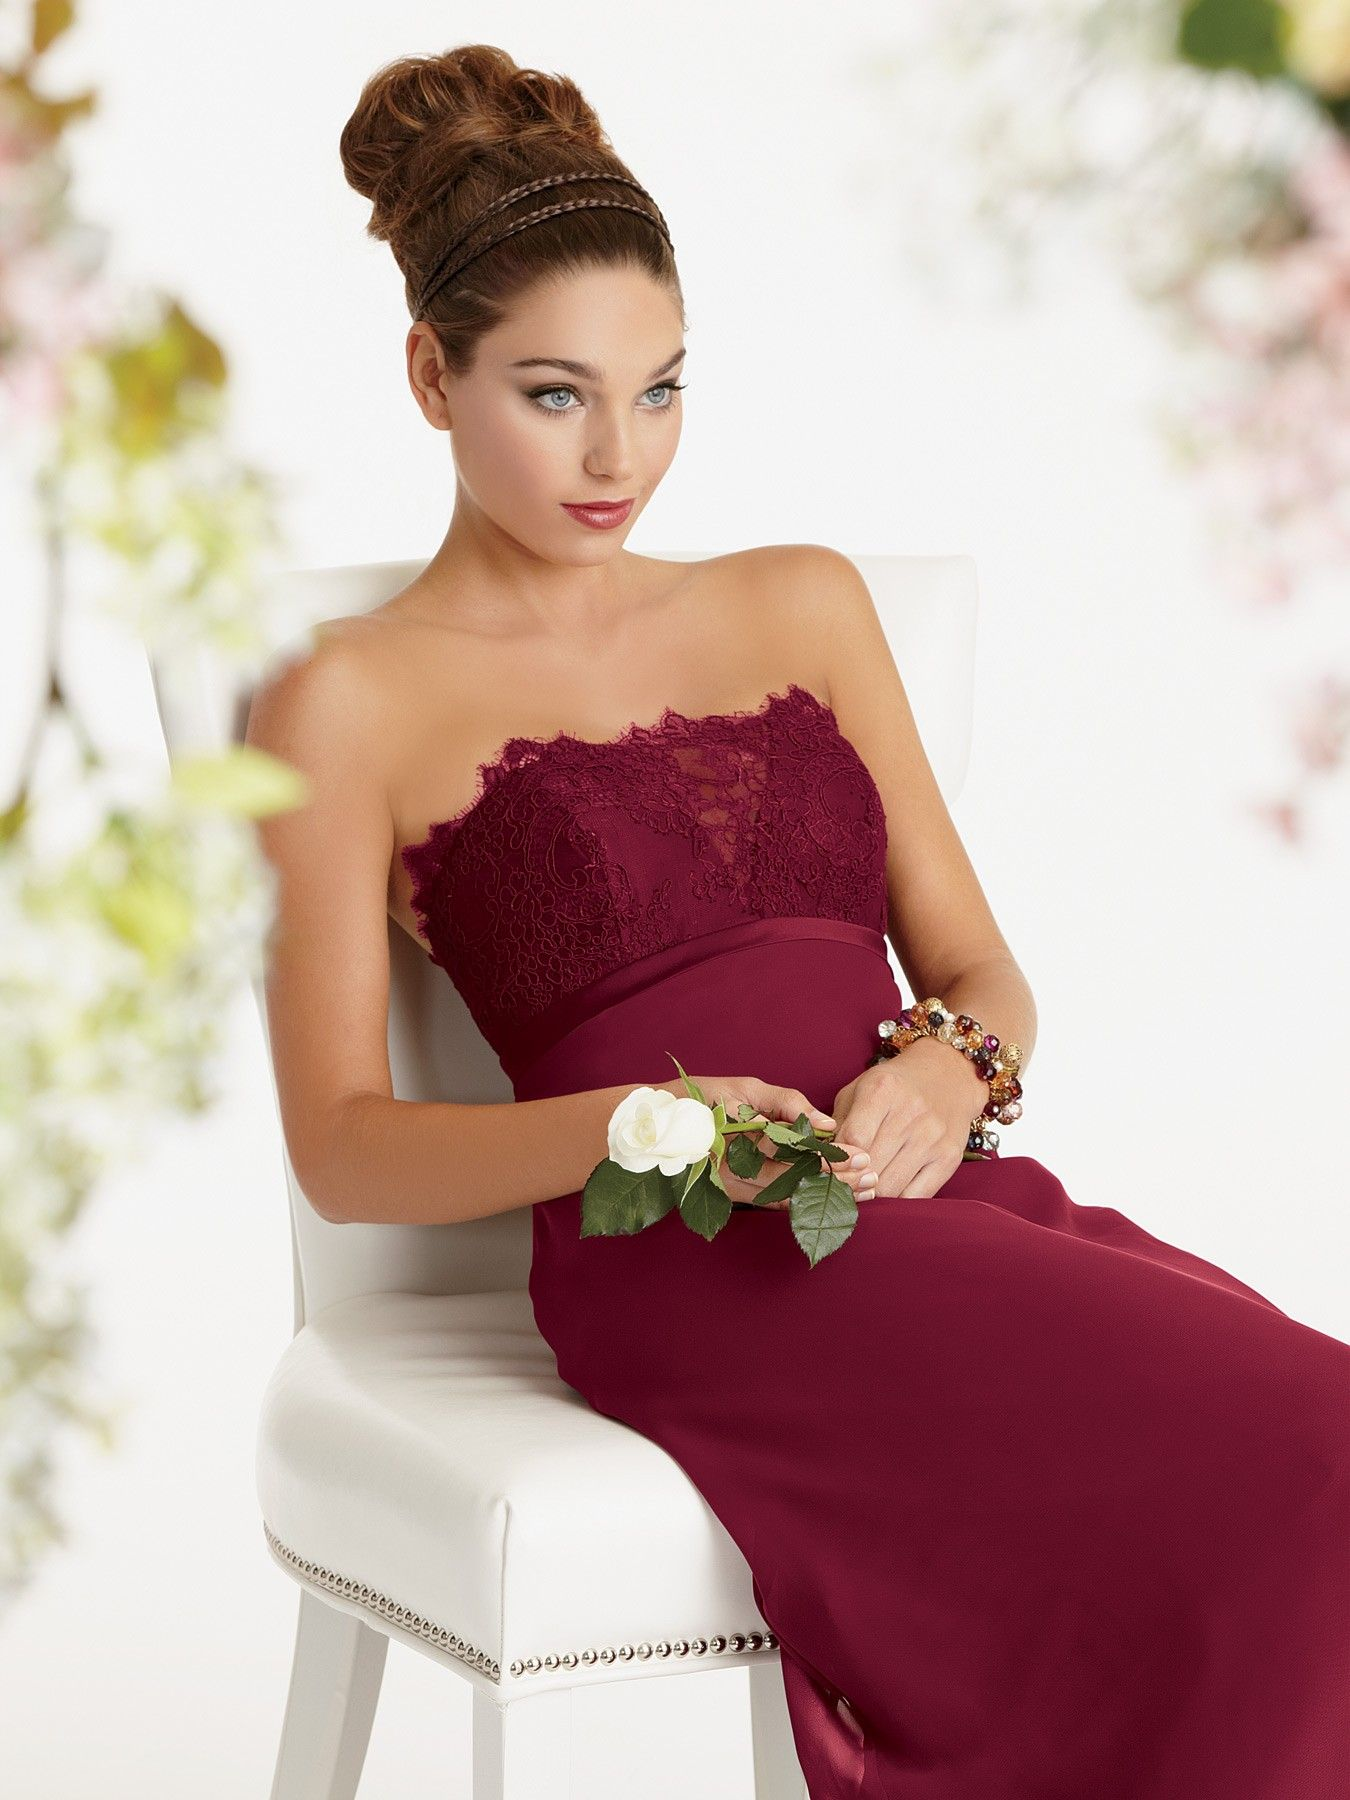 Jordan bridesmaid and junior bridesmaid dress style 558 new in jordan bridesmaid and junior bridesmaid dress style 558 new ombrellifo Image collections